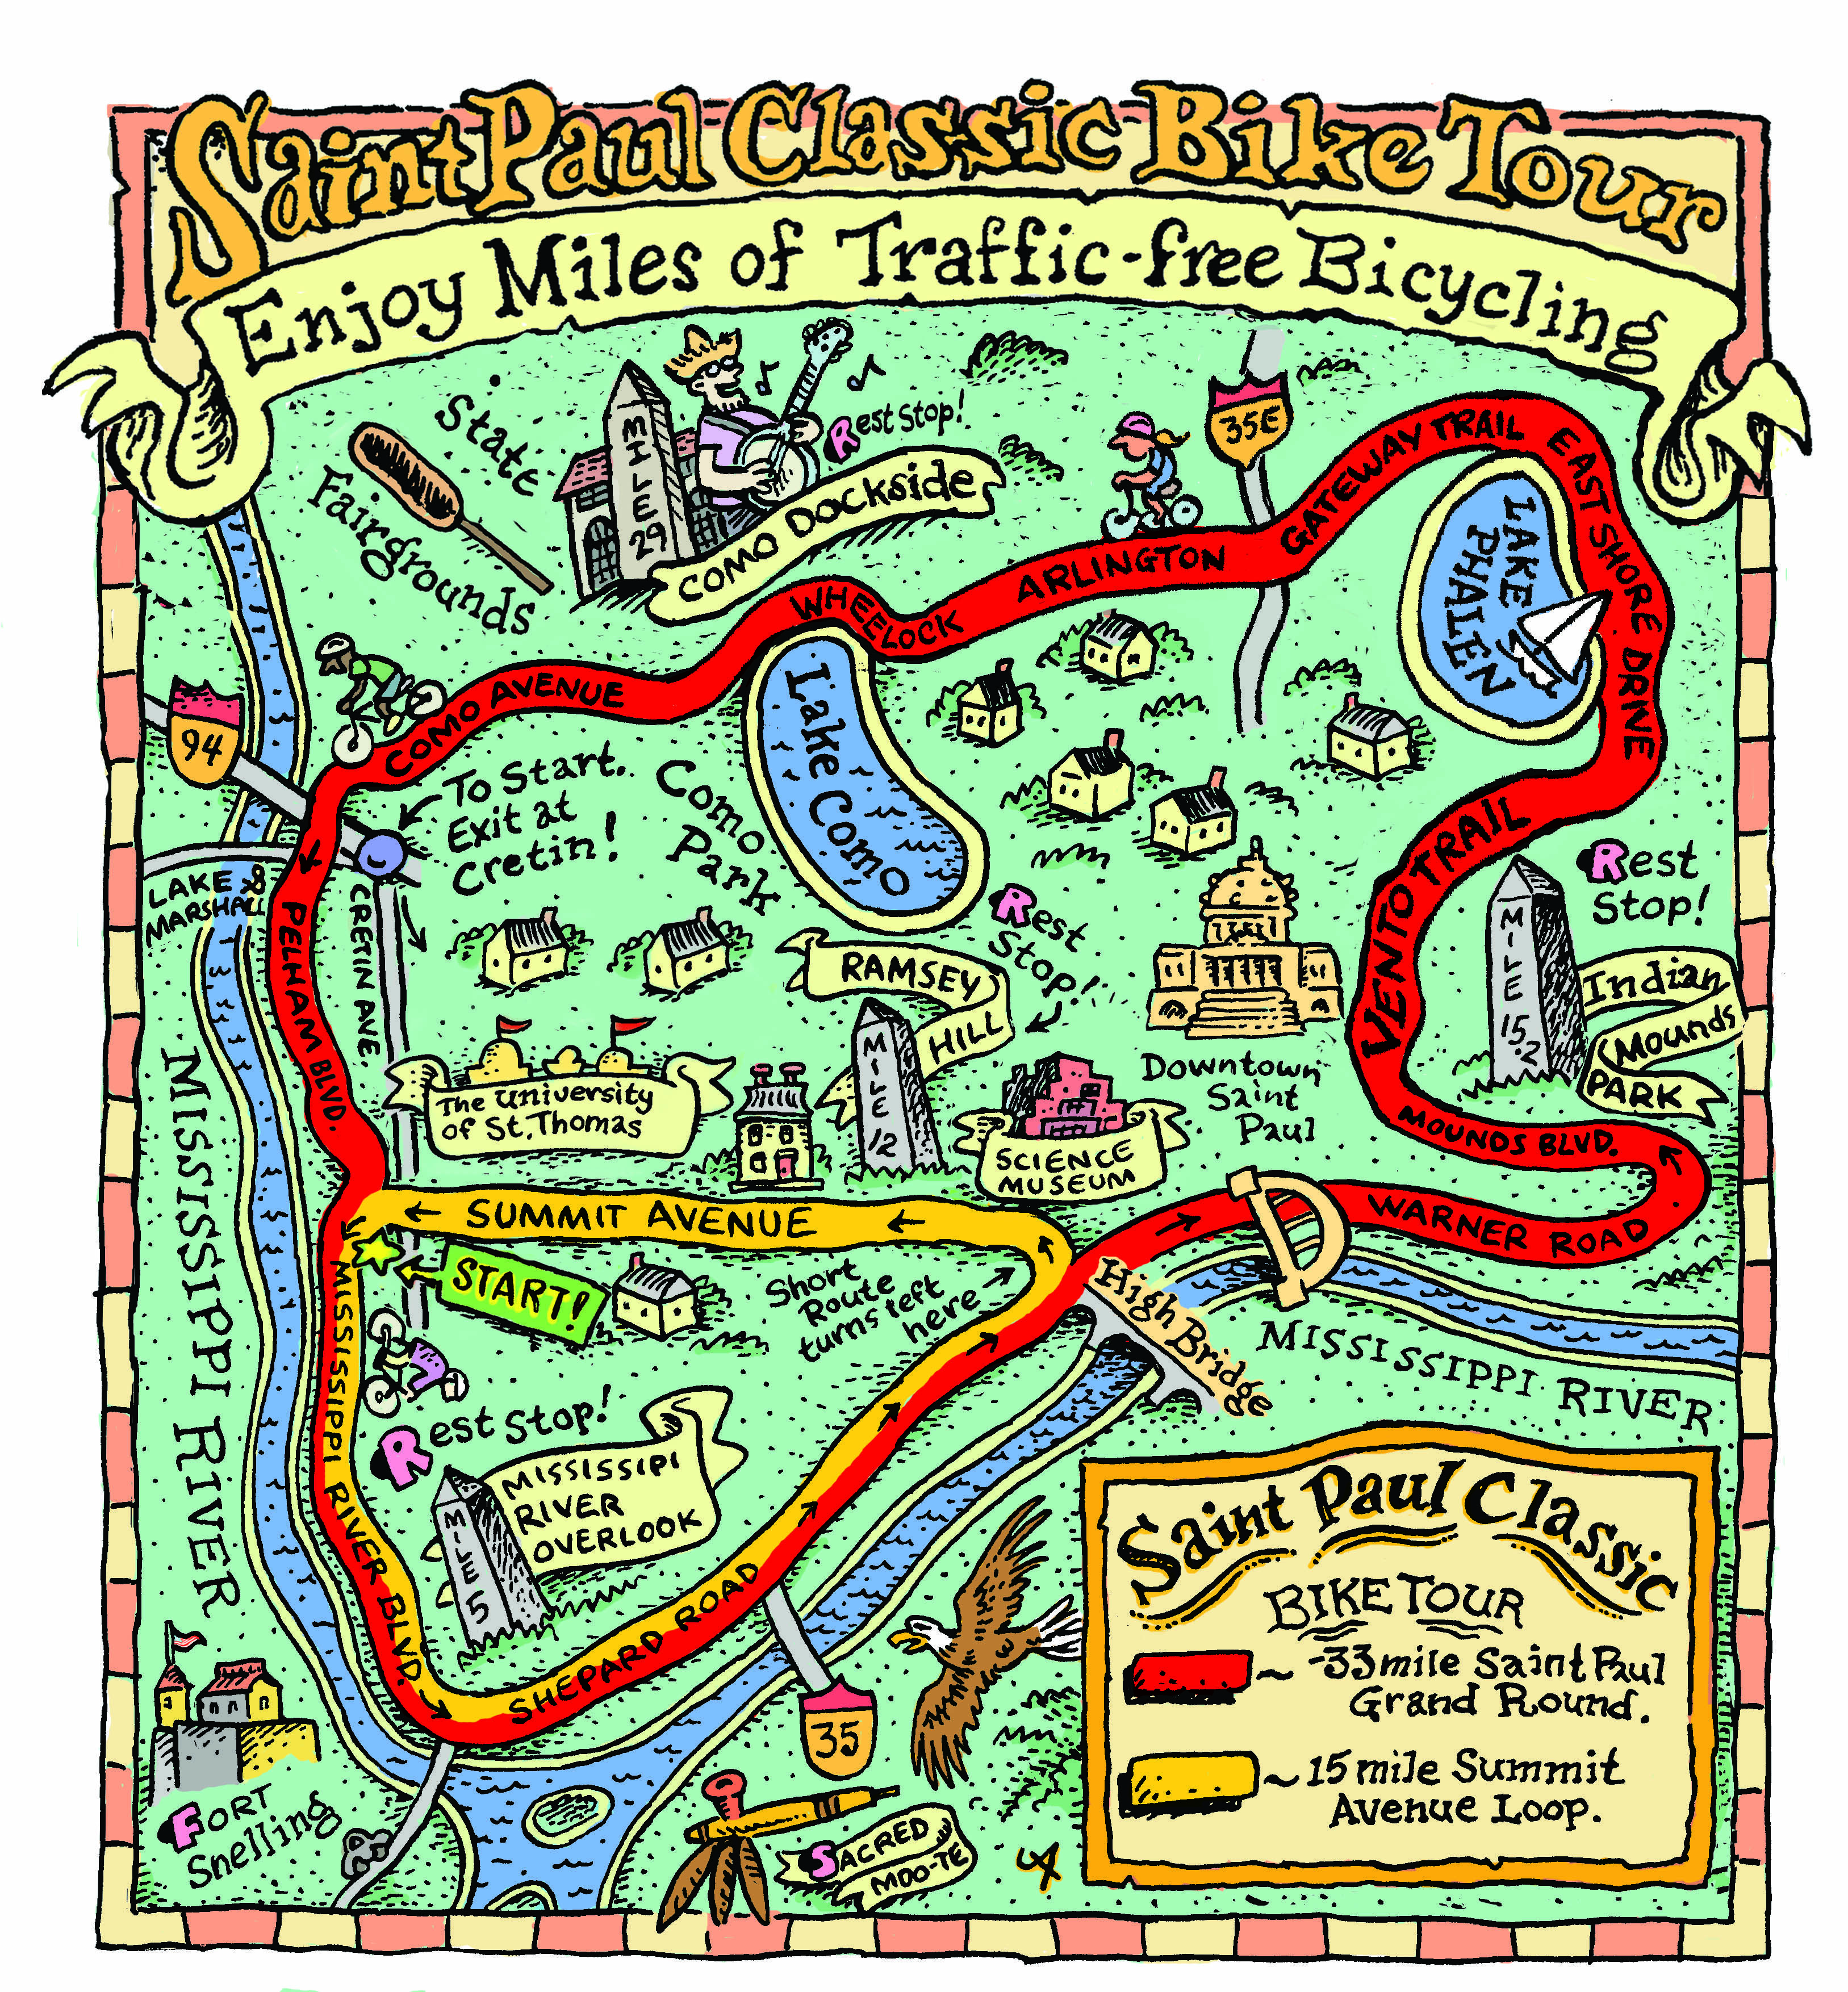 St Paul Classic Bike Tour Route Map Mapping Pinterest Buckets